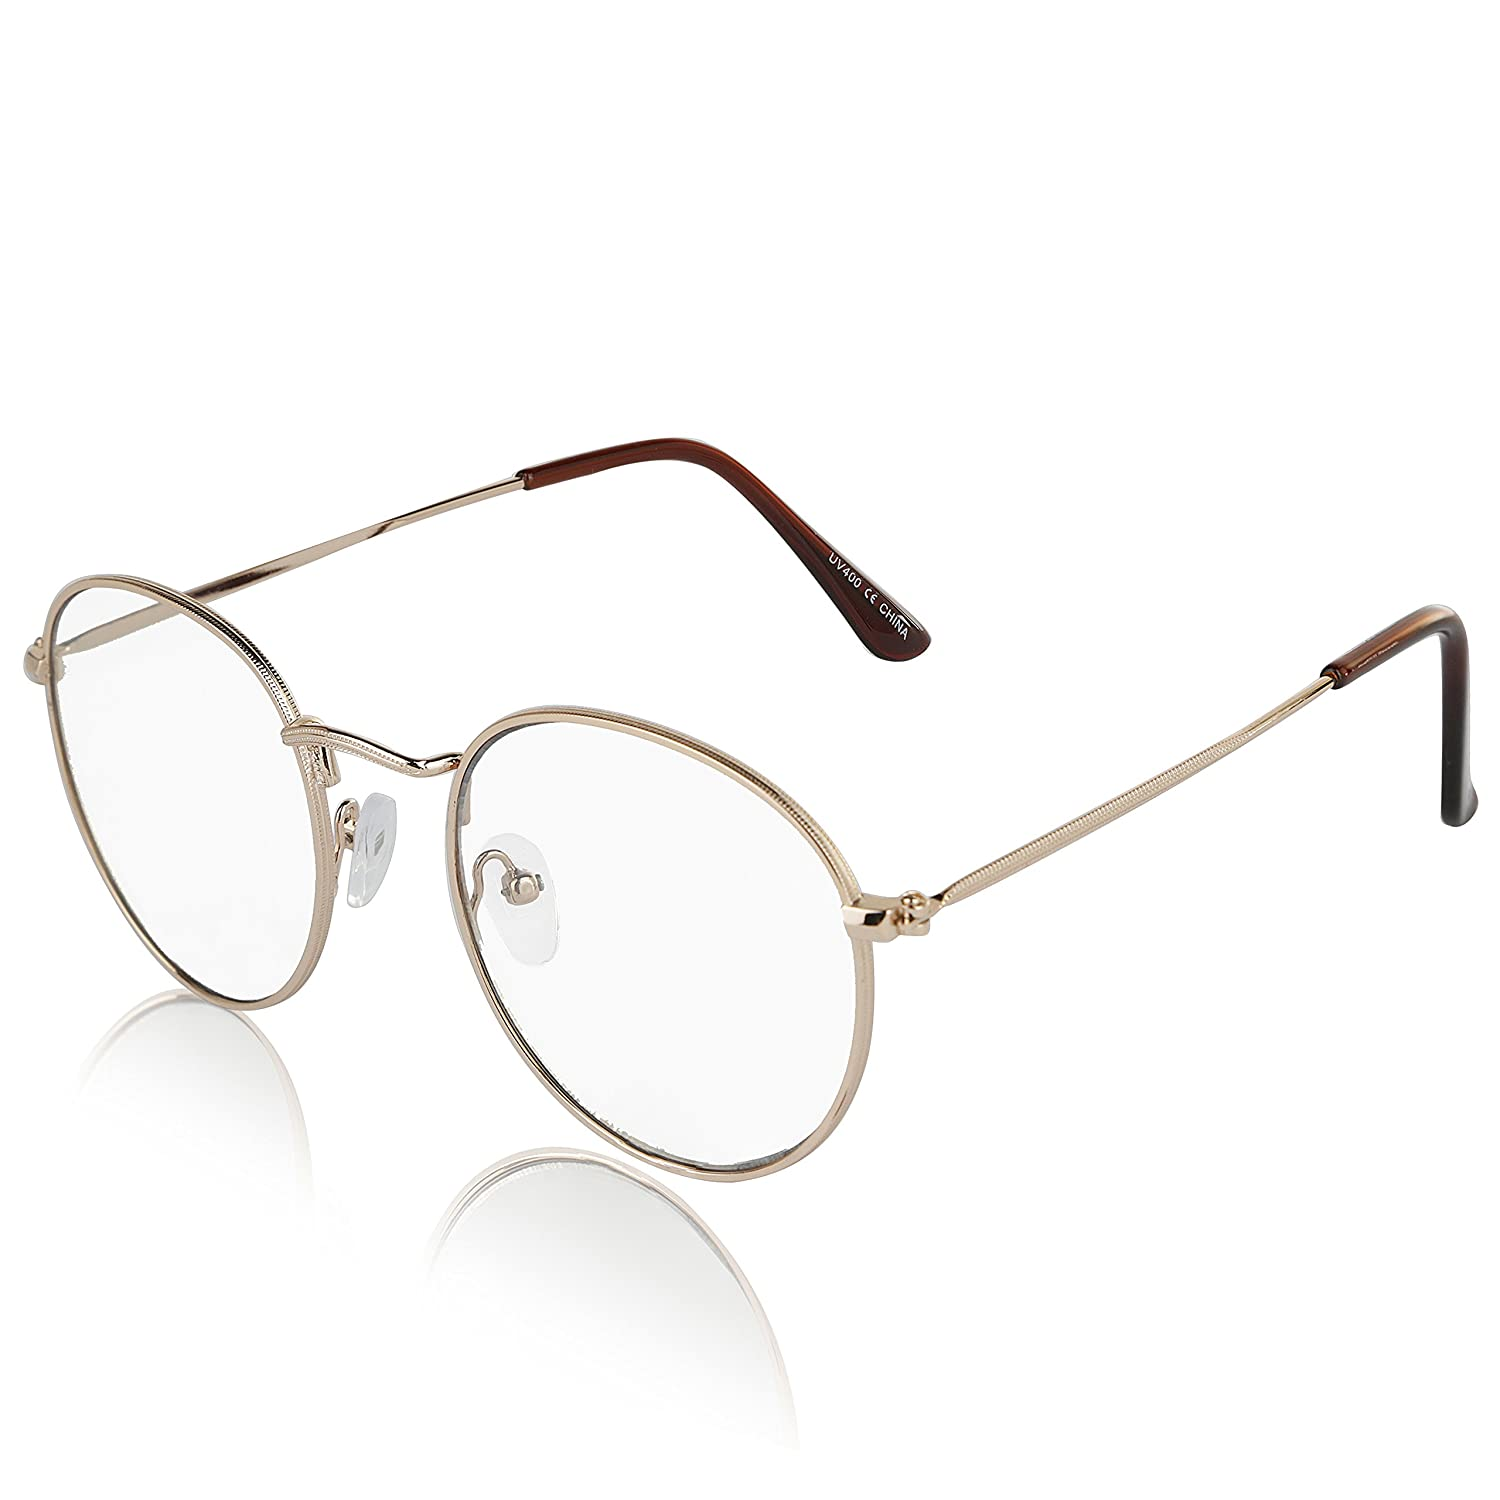 ae0f644cdbf Amazon.com  Non Prescription Retro Fake Clear Lens Gold Metal Frame  Eyeglasses Woman UV400  Clothing